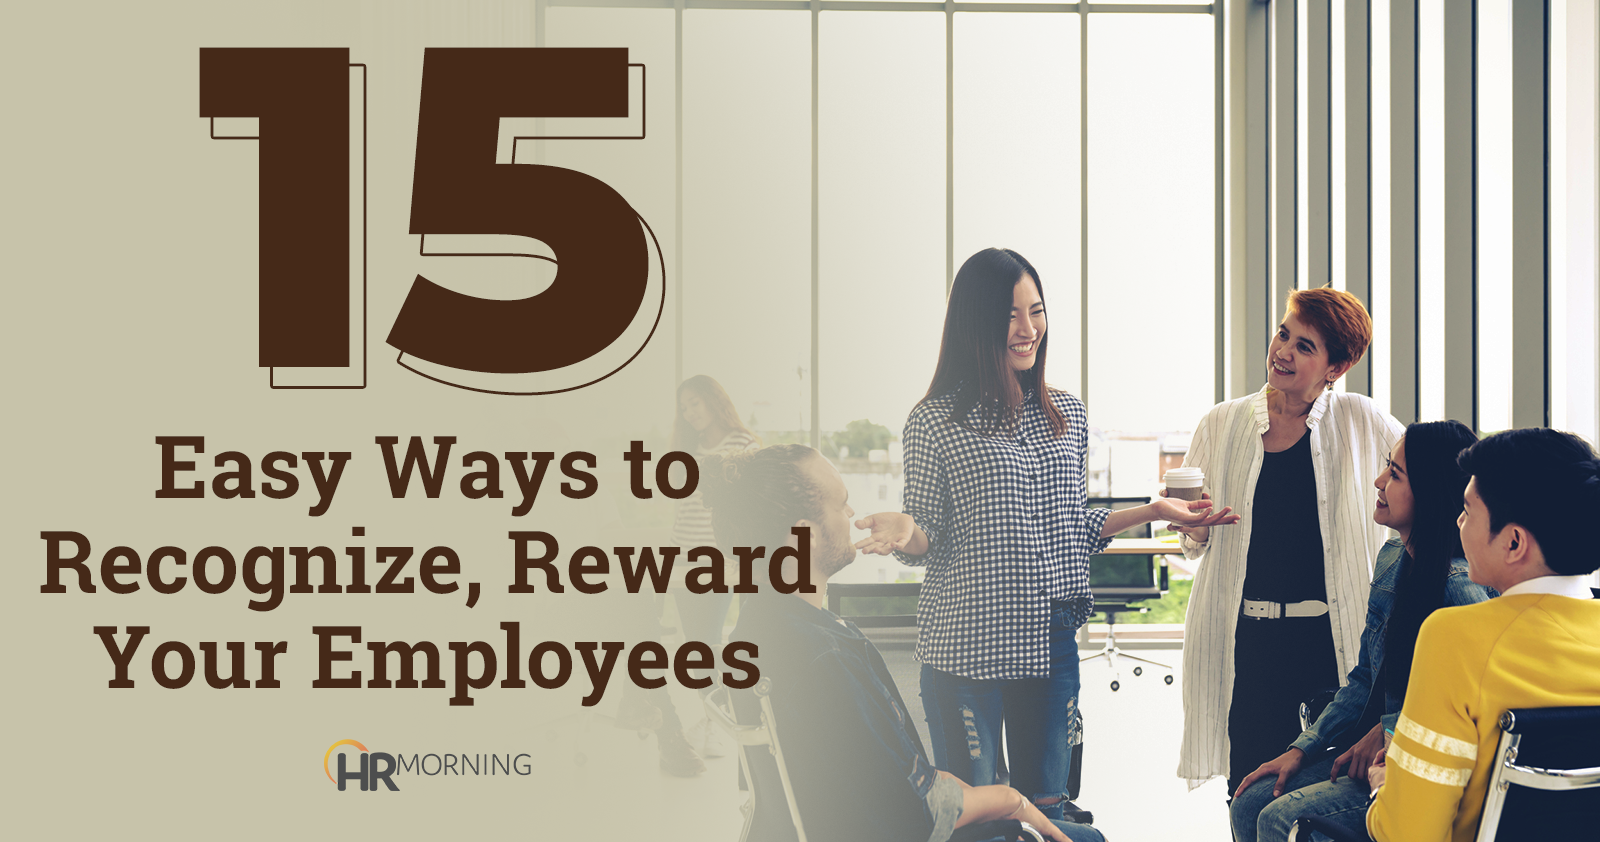 15 easy ways to recognize, reward your employees